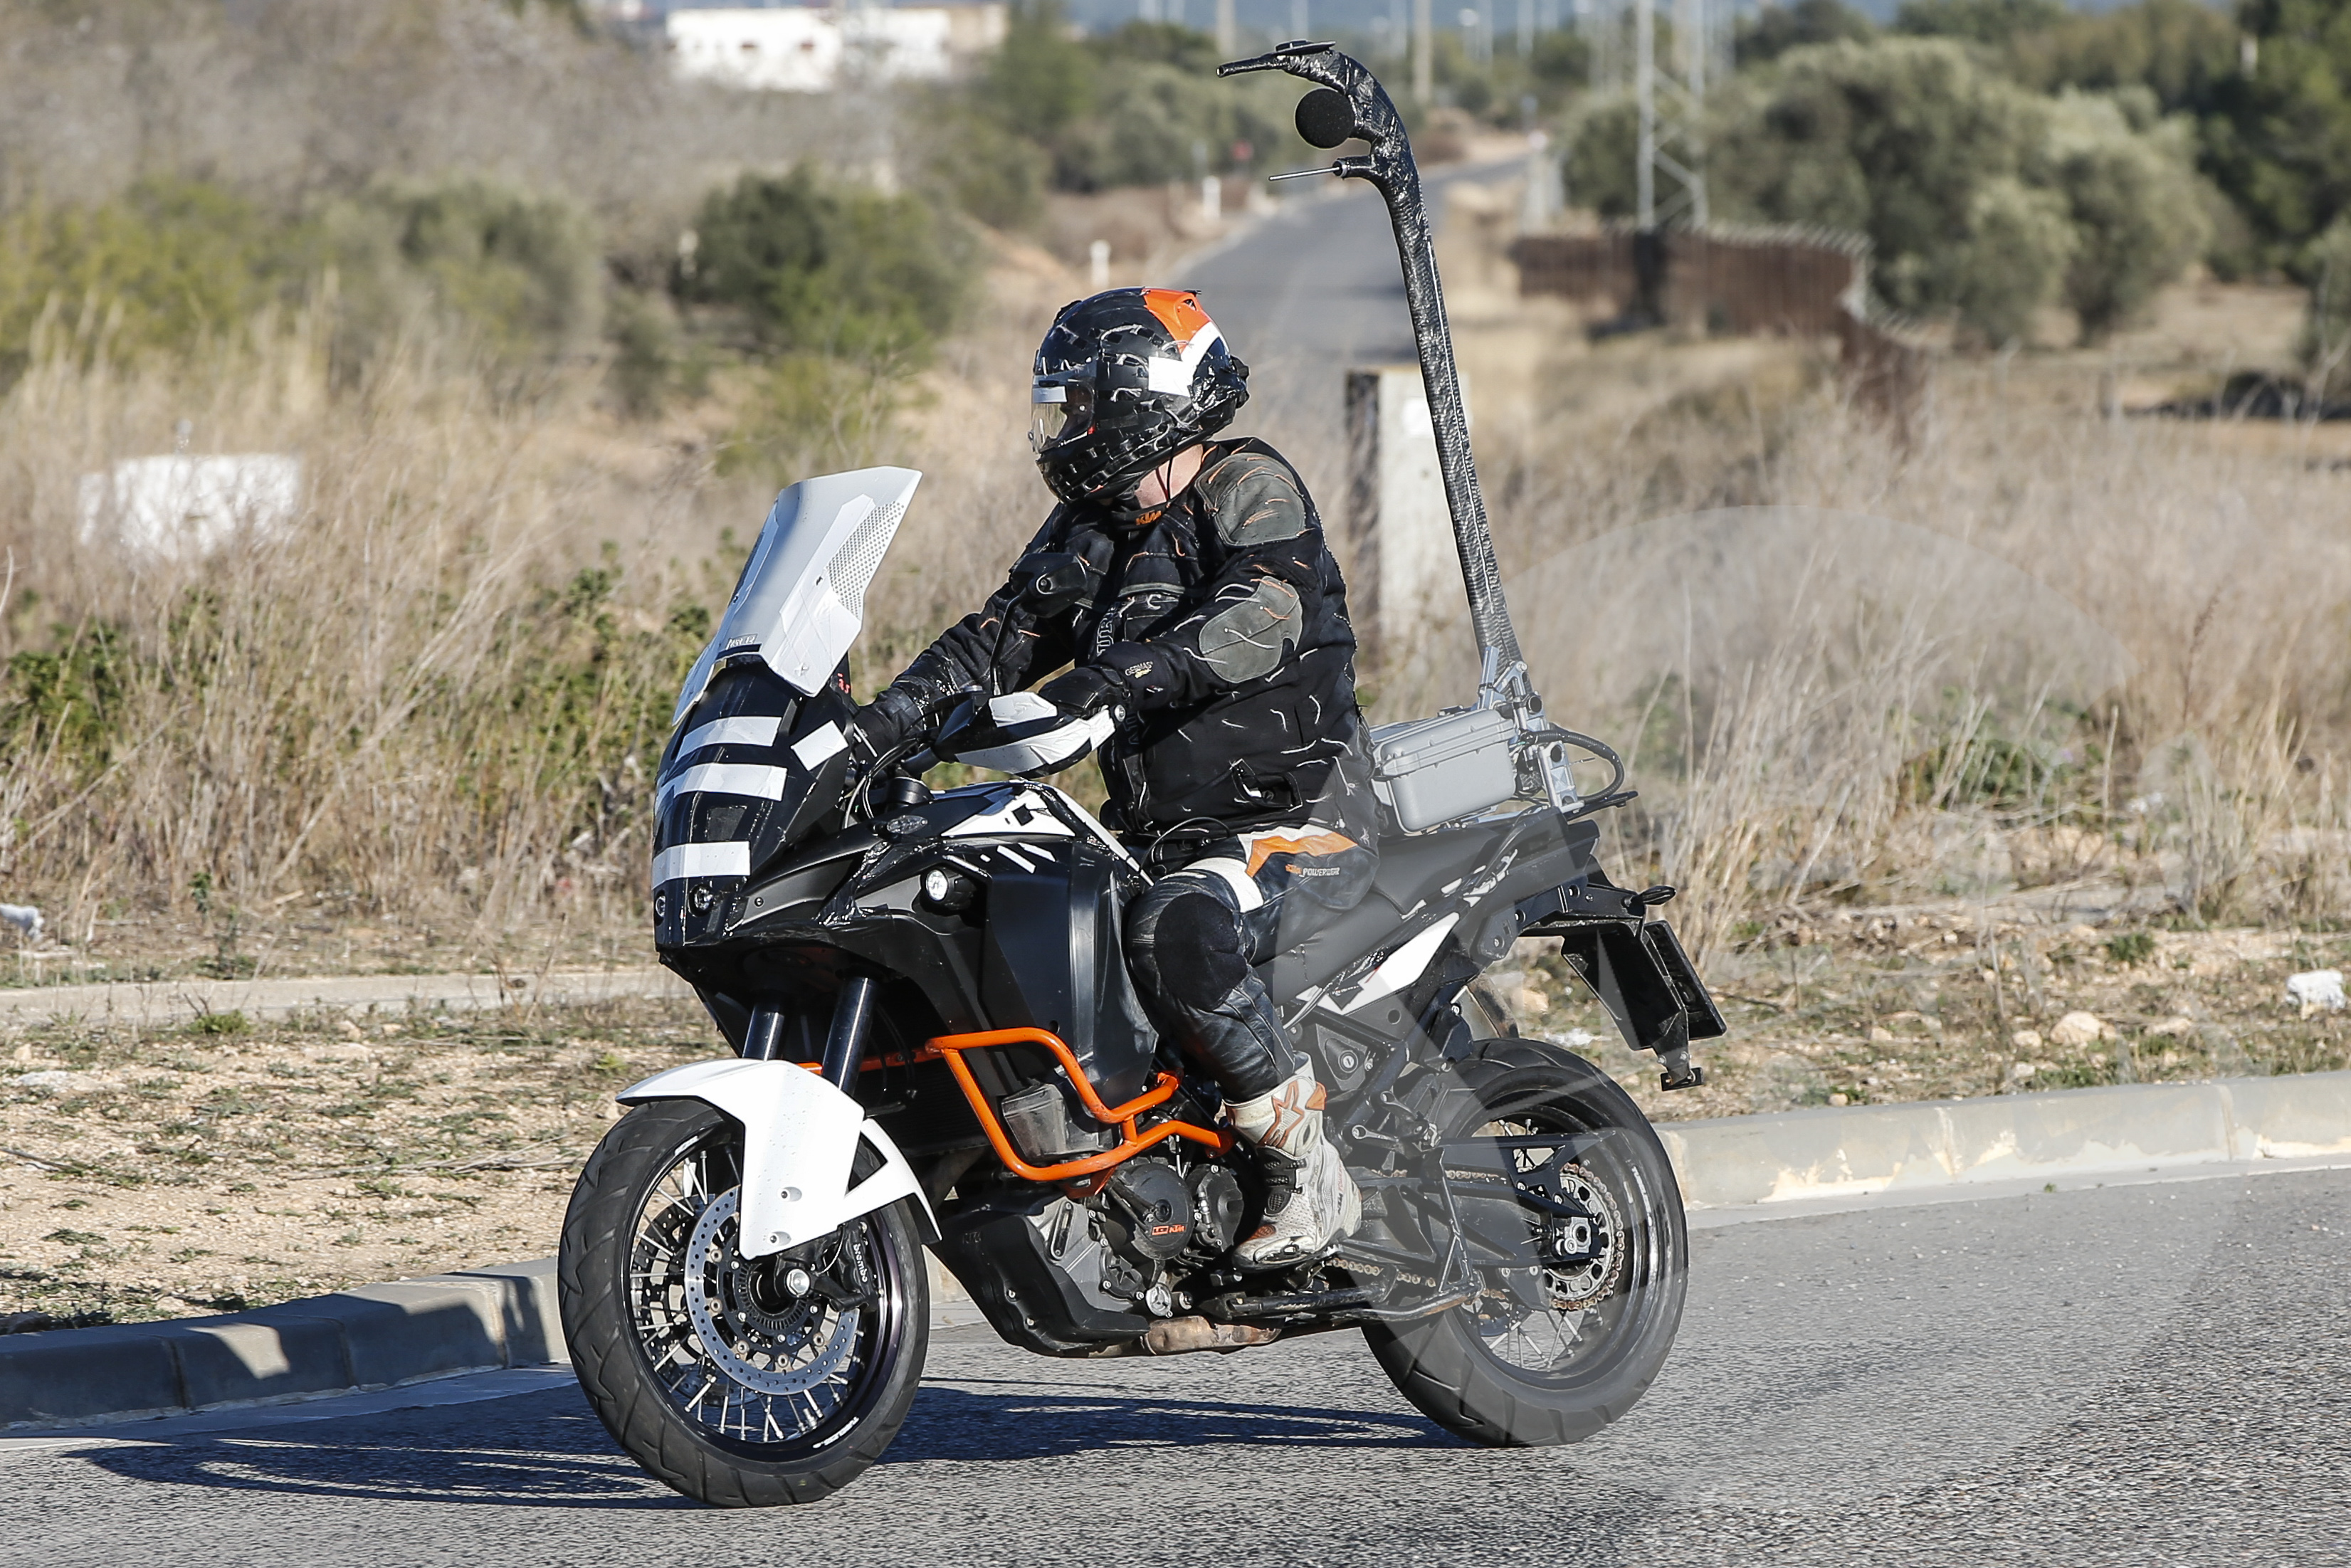 Spy shot: face-lifted KTM 1290 Super Adventure revealed